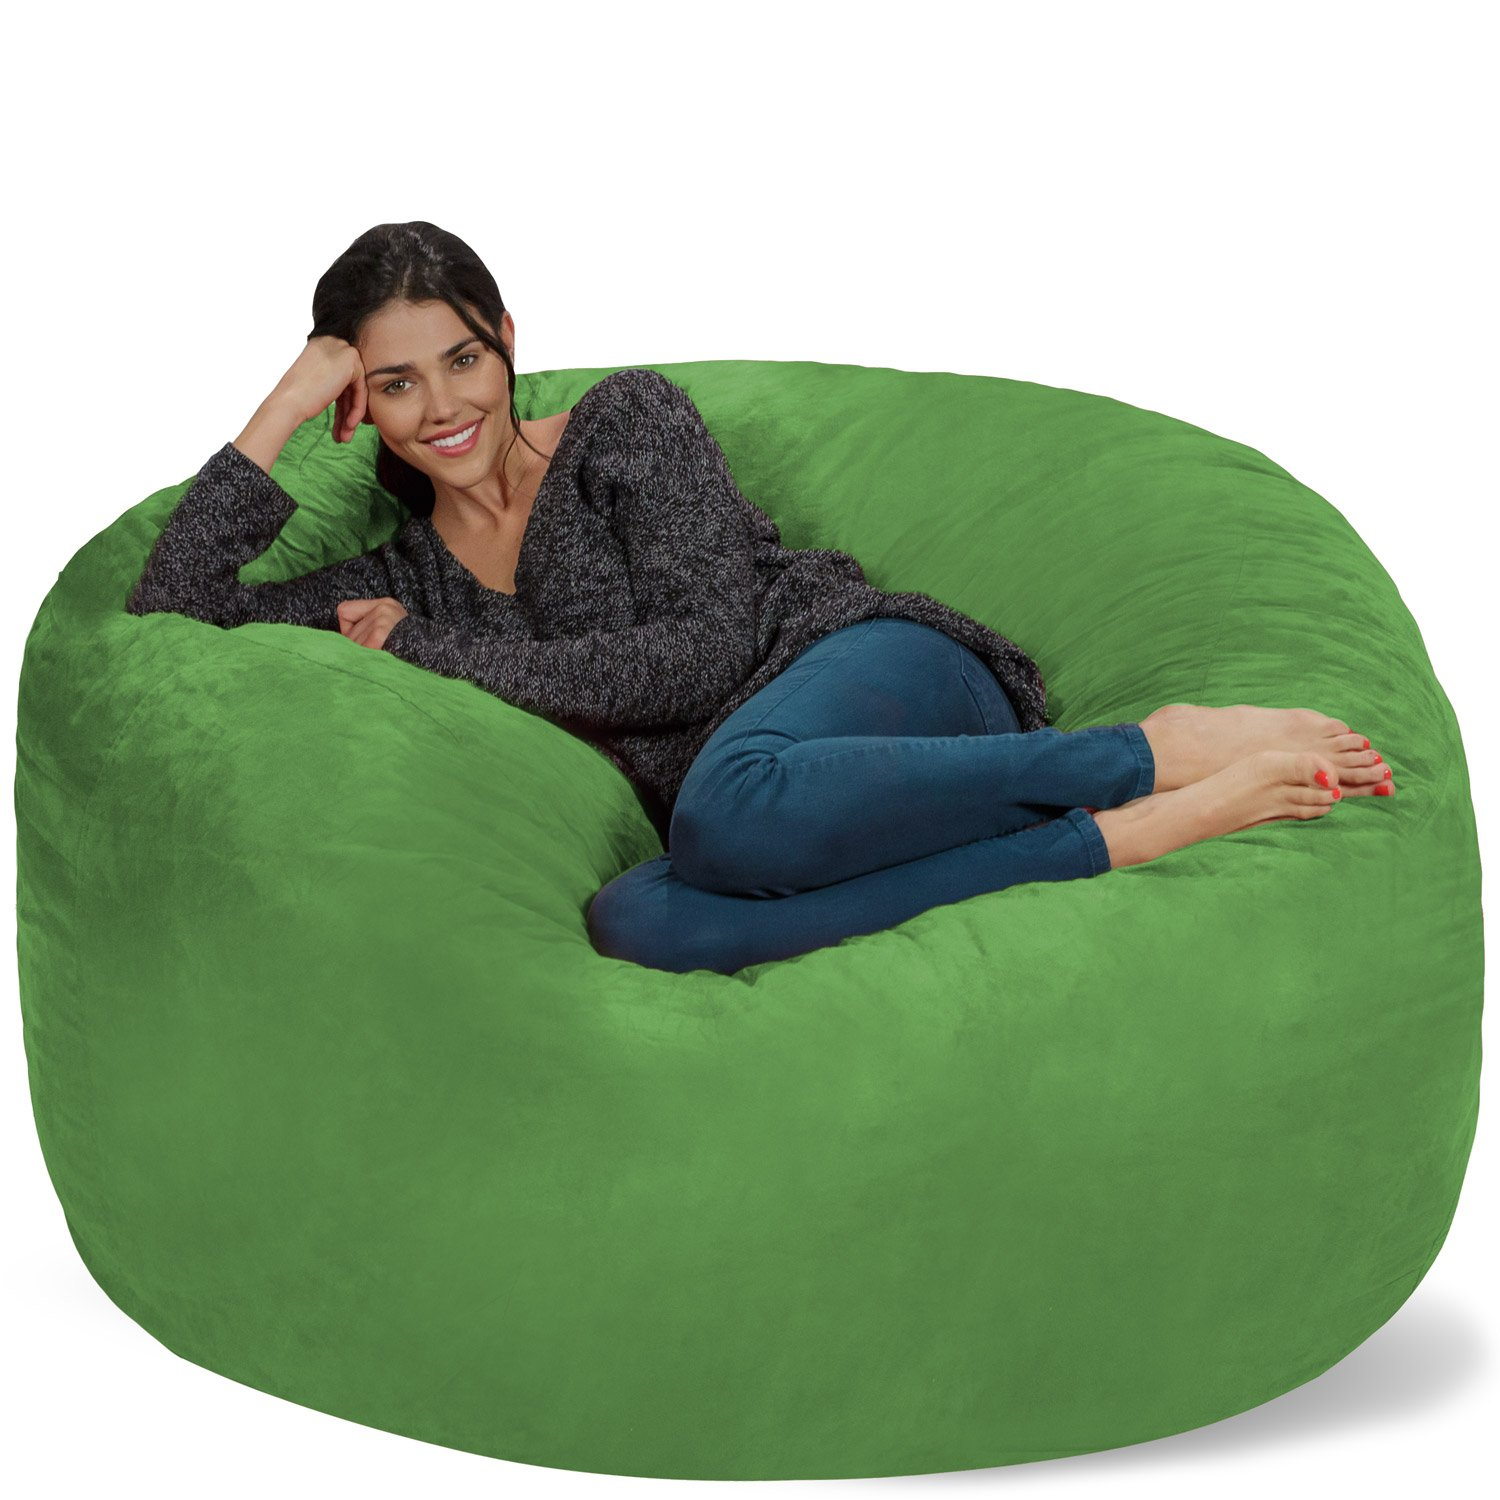 Chill Bag - Bean Bags